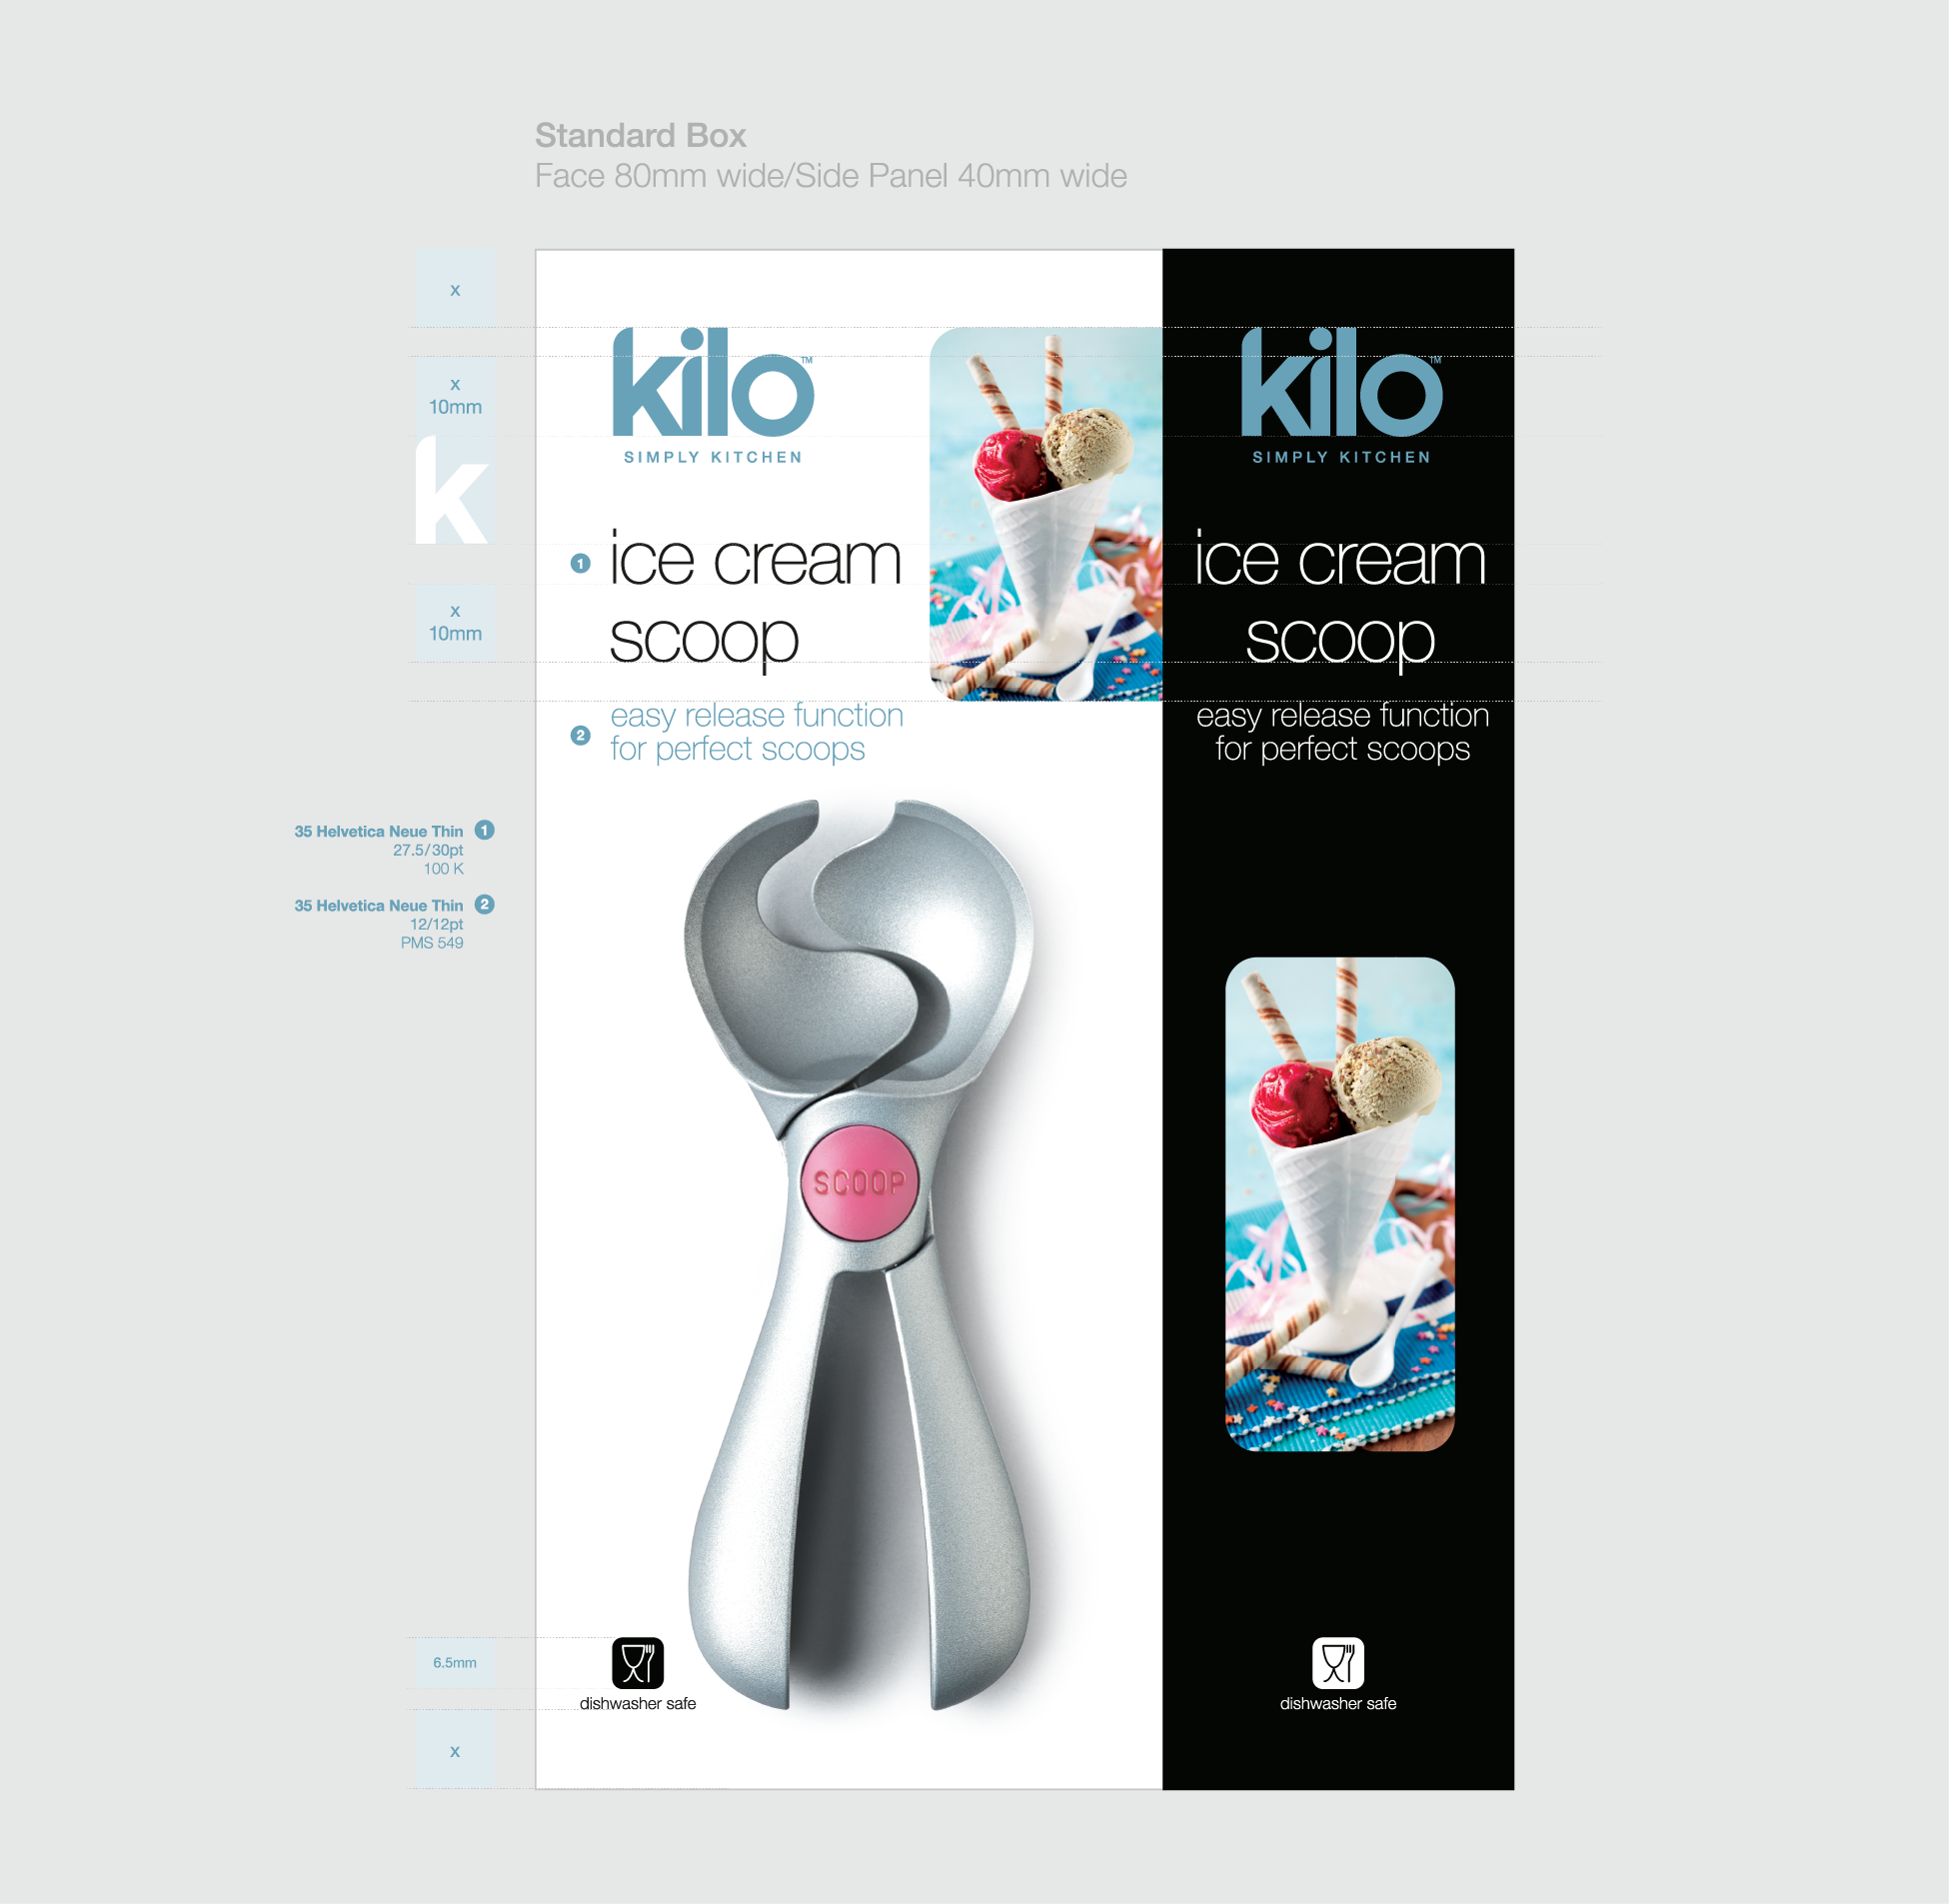 CKS Kilo kitchenware packaging by FSG Design